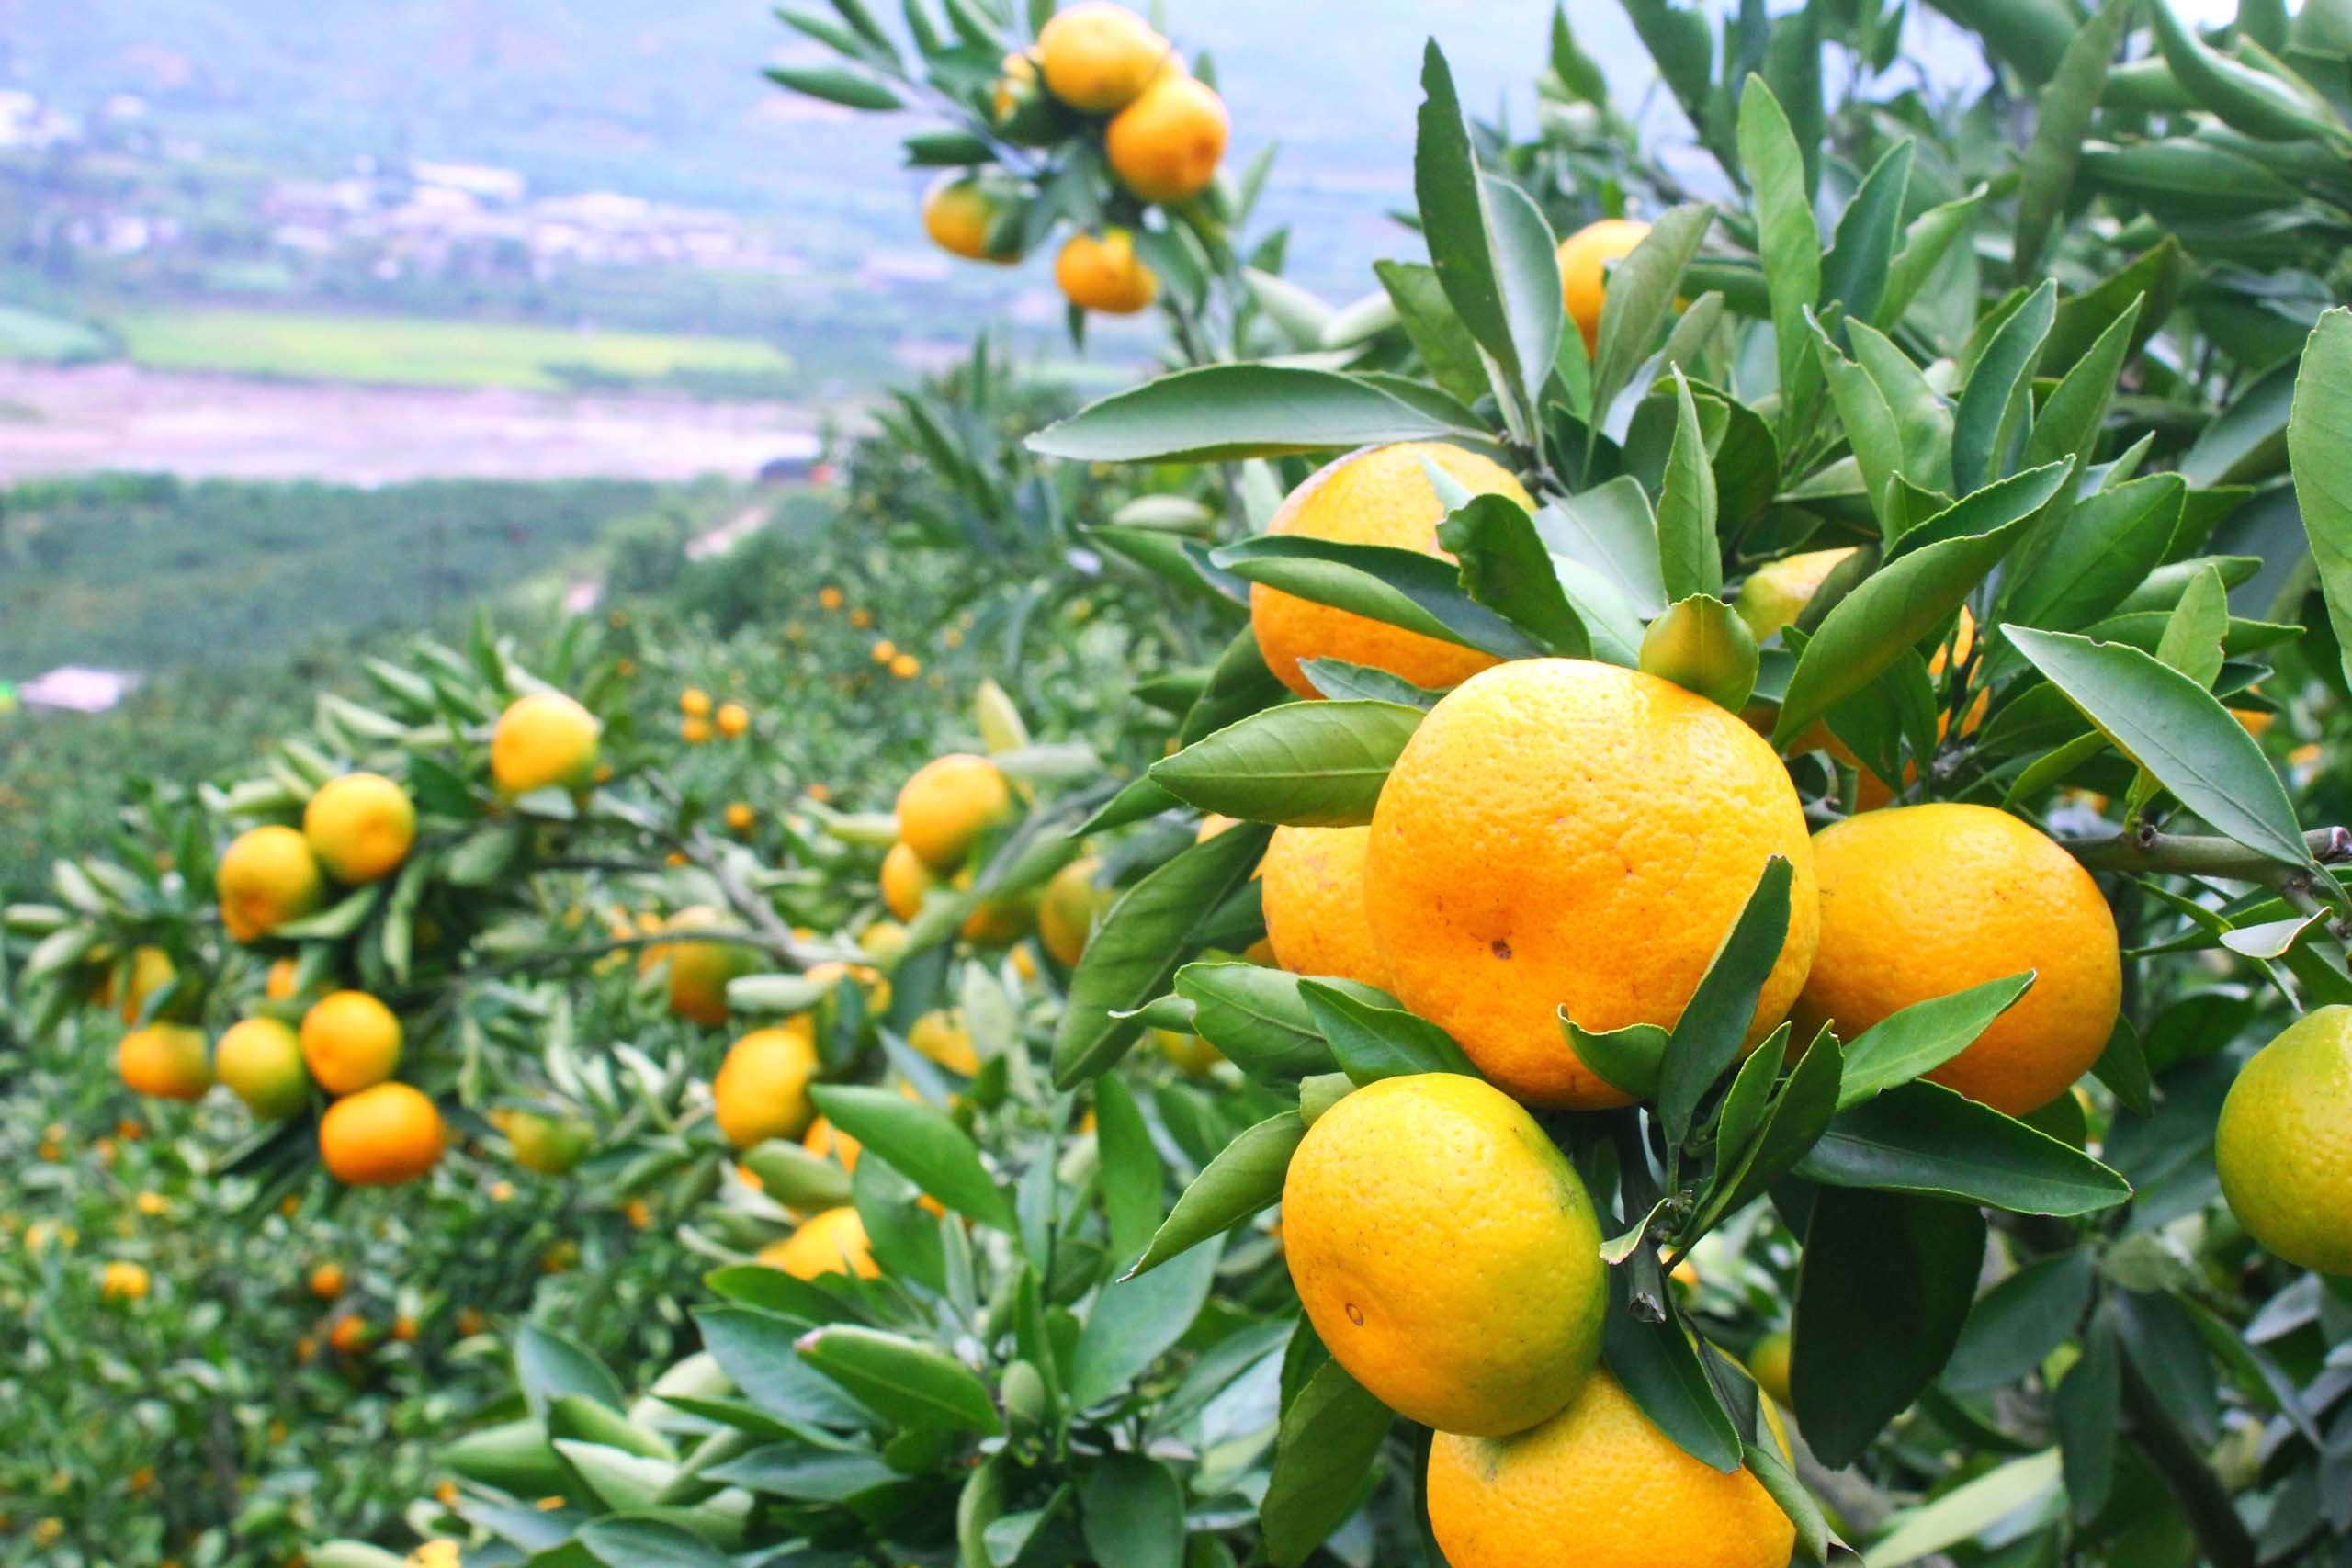 New citrus crop in Italy